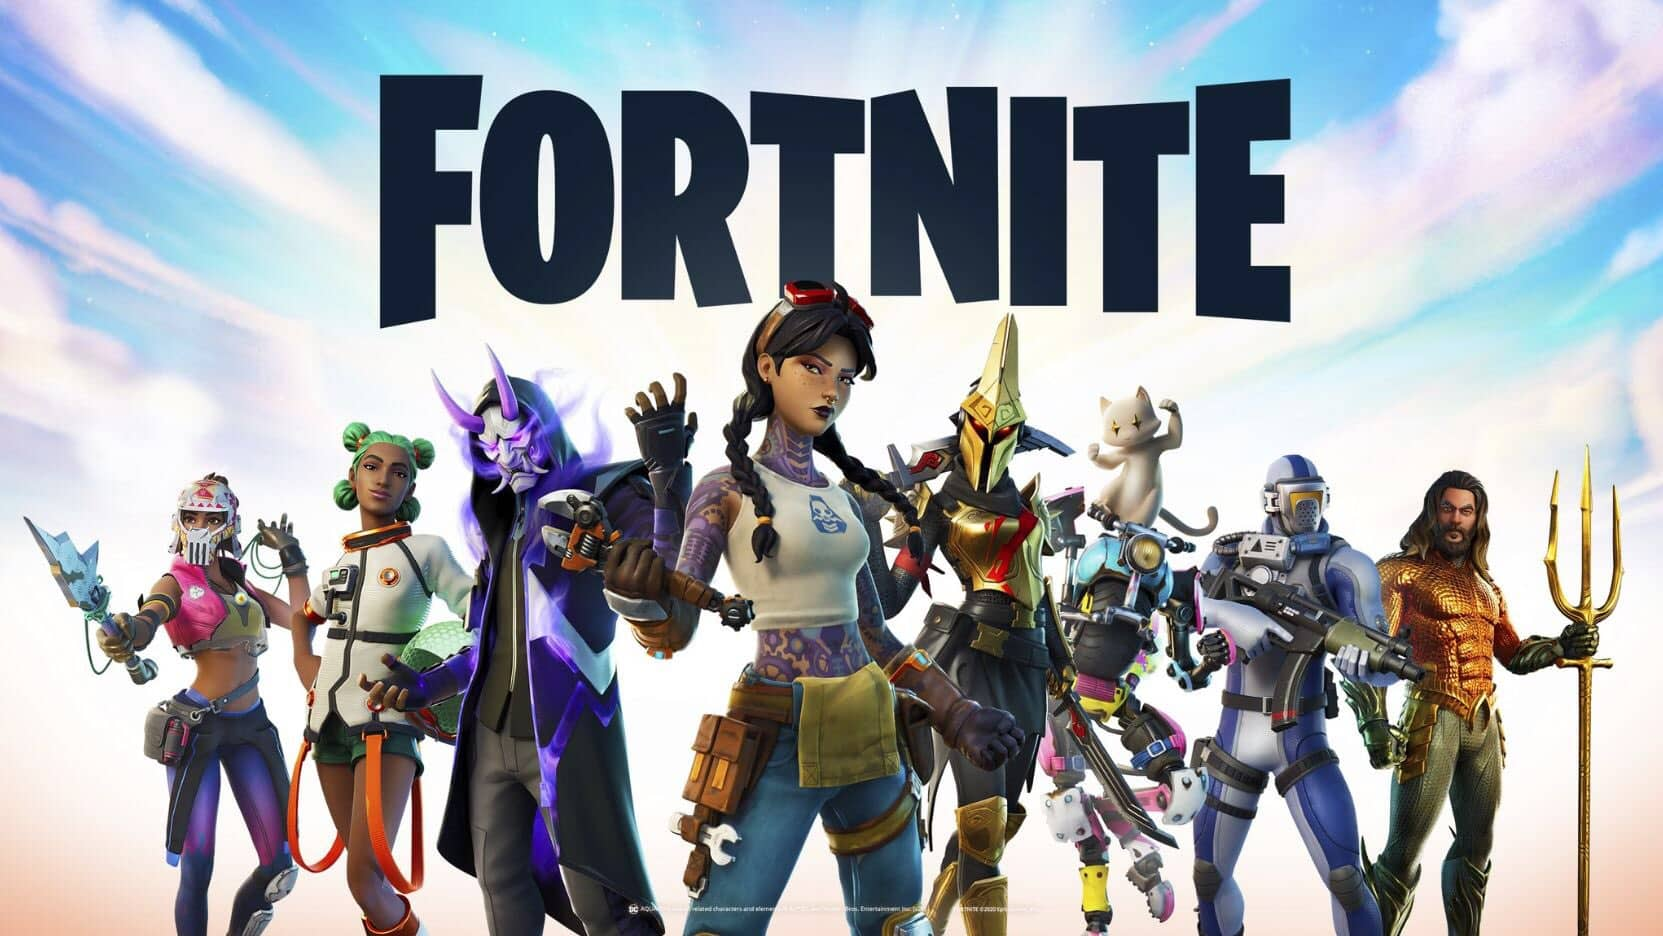 Fortnite Apple iOS App Store GOogle Play Store Epic games